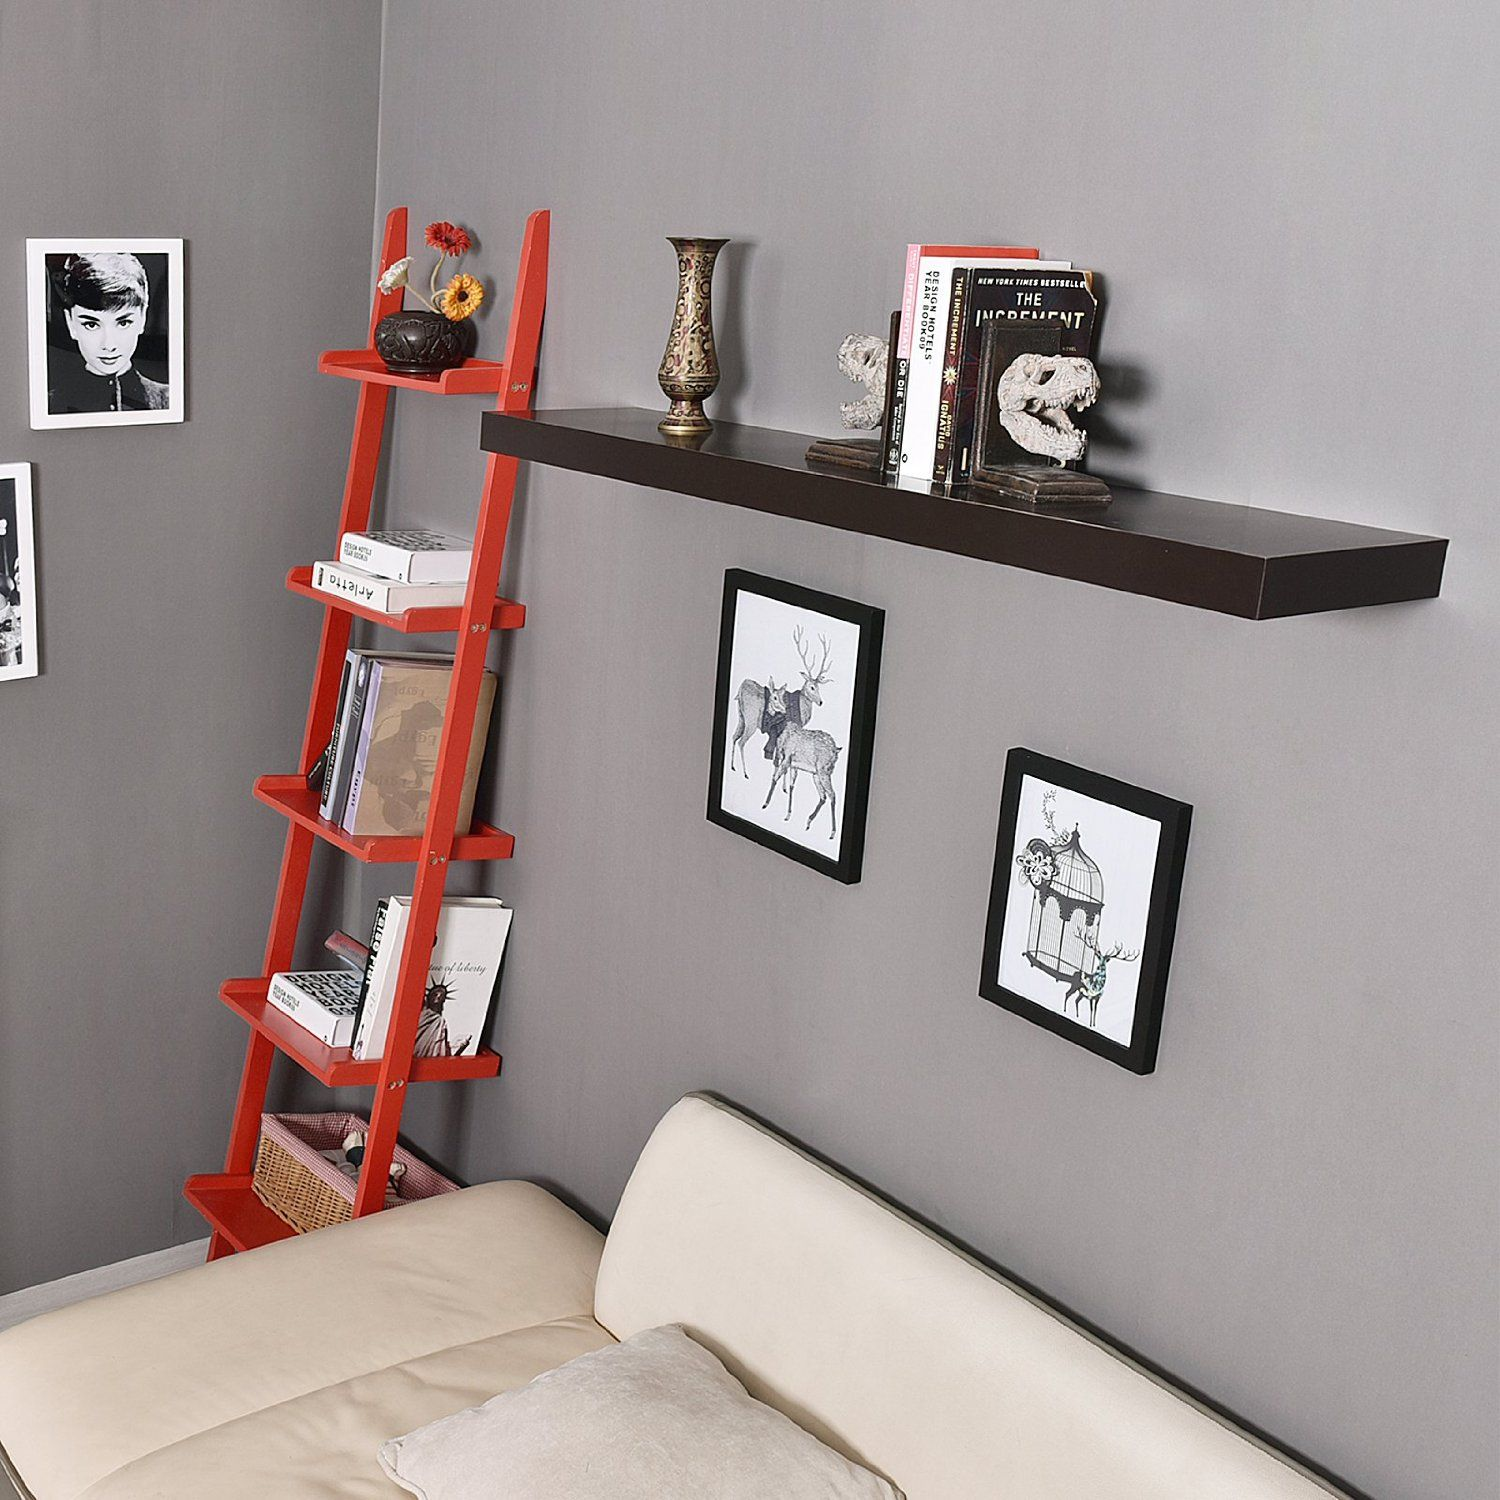 48 Inch Mission Floating Wall Shelf The Shelf Becomes One With The